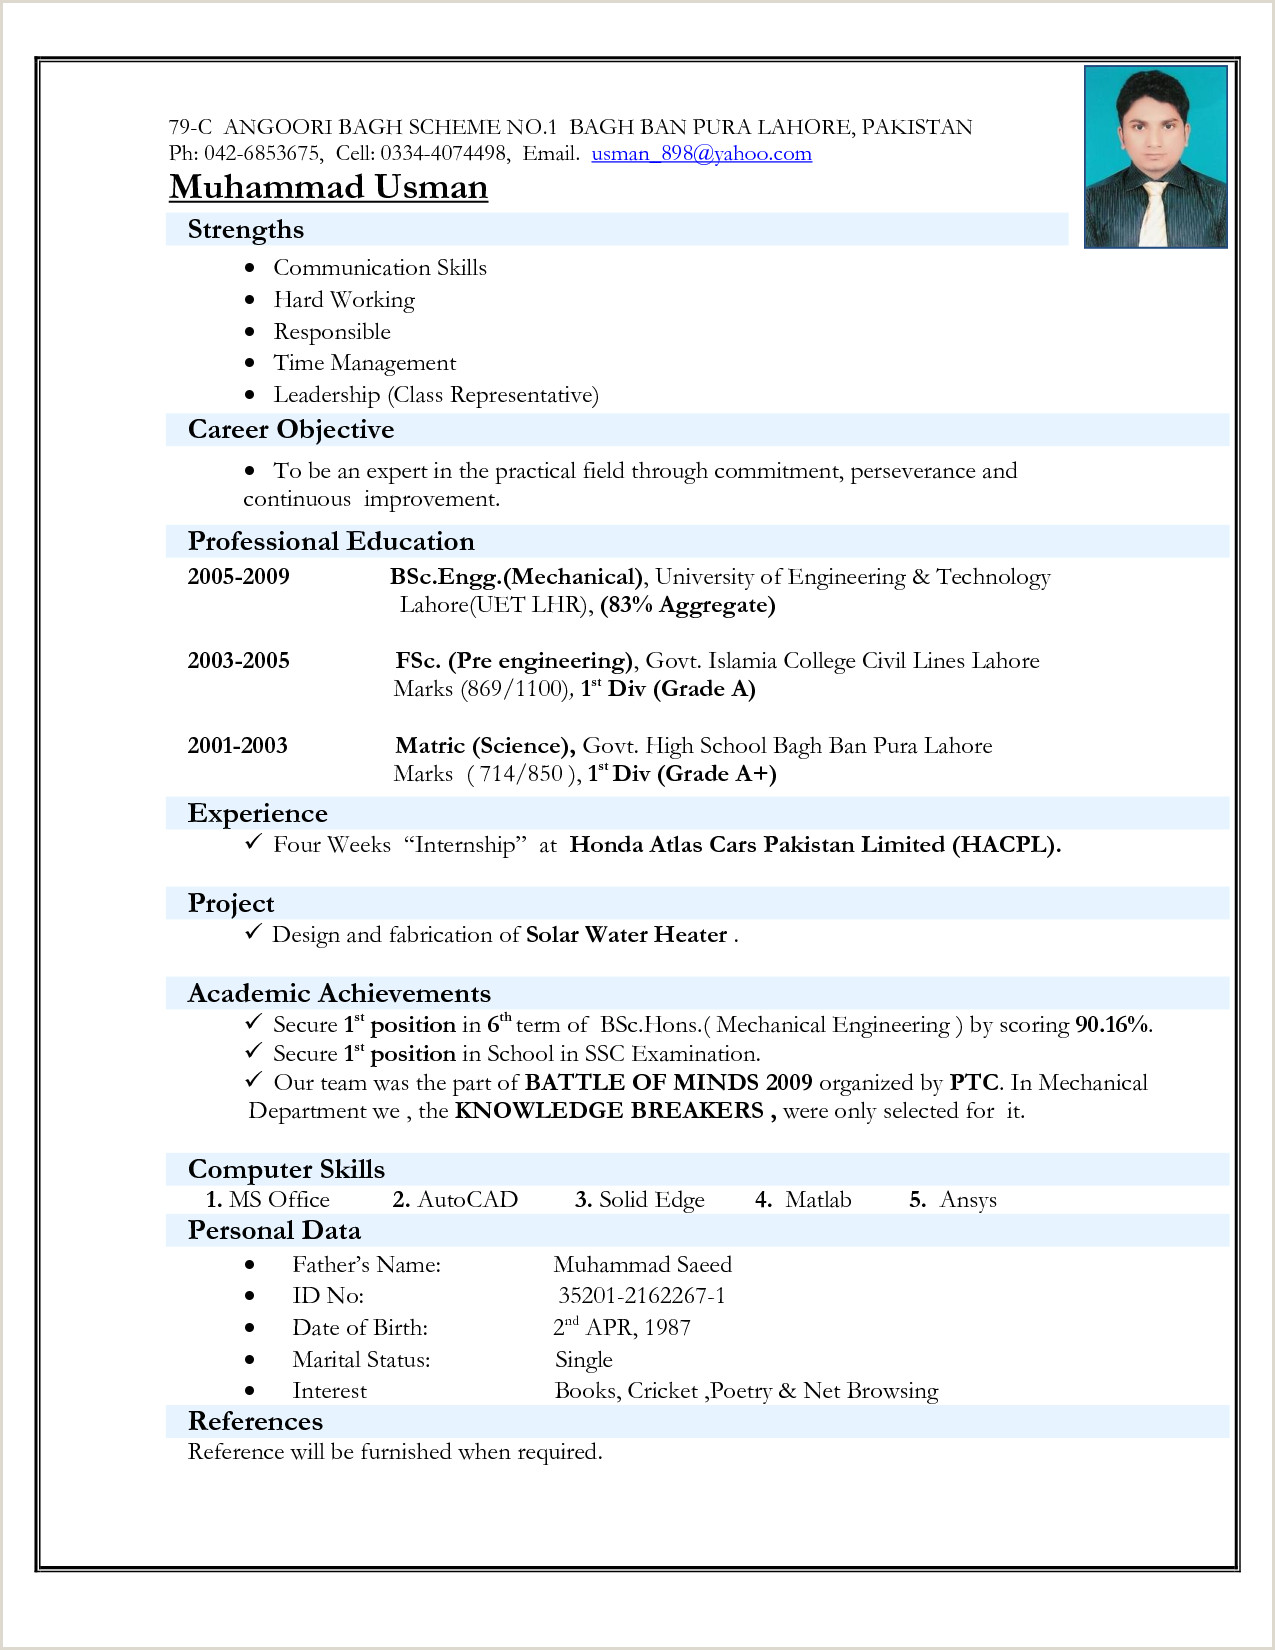 Bca Fresher Resume Format Download In Ms Word Pin By Aa Abhimanyu On Resumes